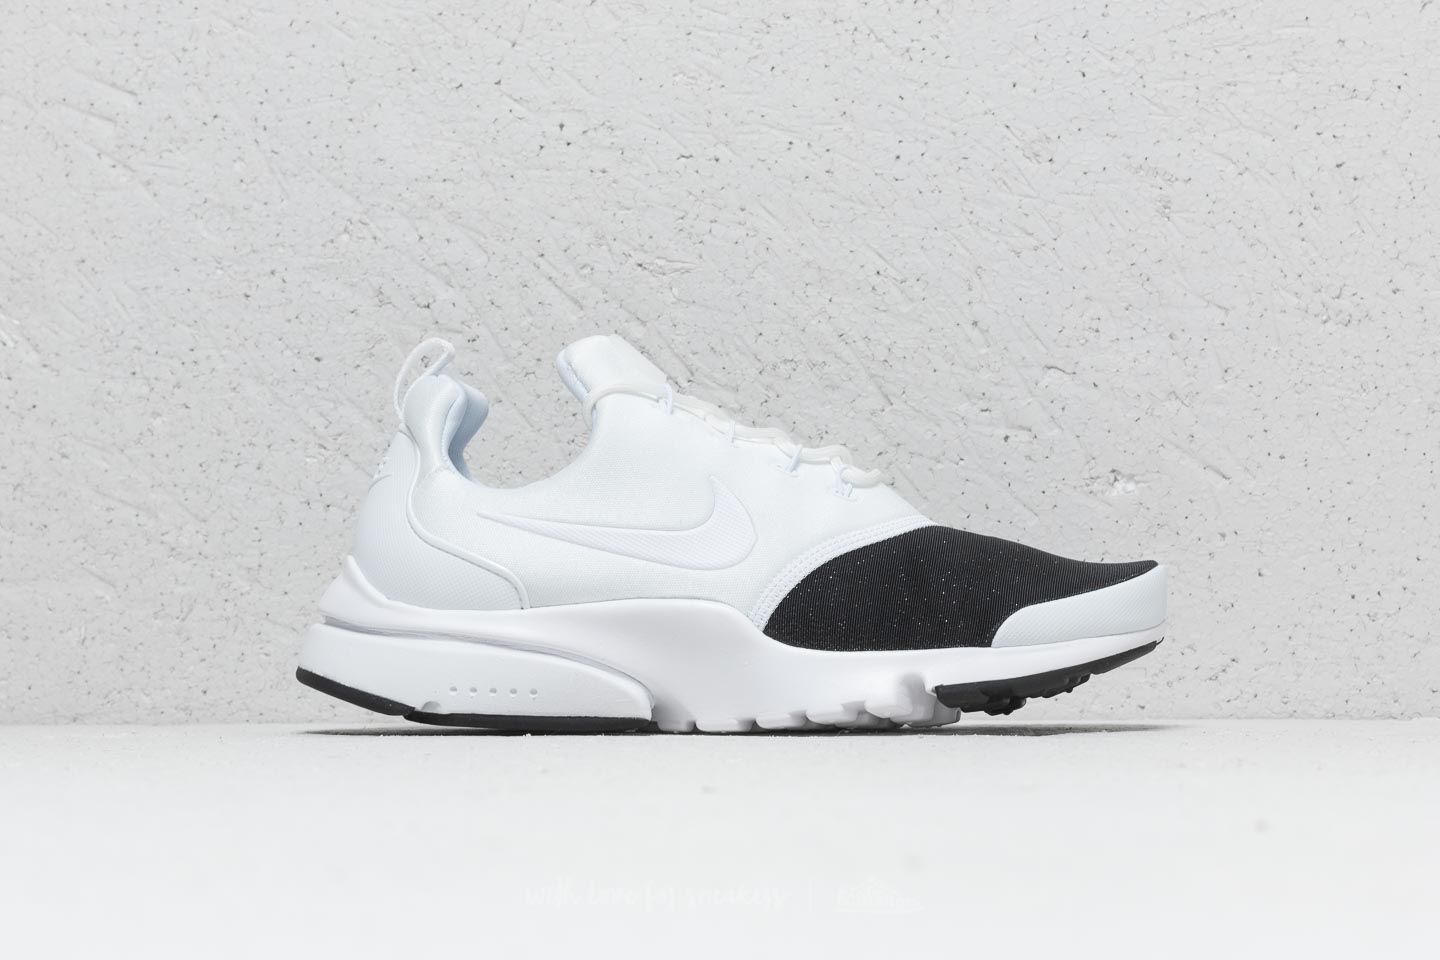 3a0ca3d22a2b Nike Wmns Presto Fly Premium White  White-Metallic Silver at a great price  110